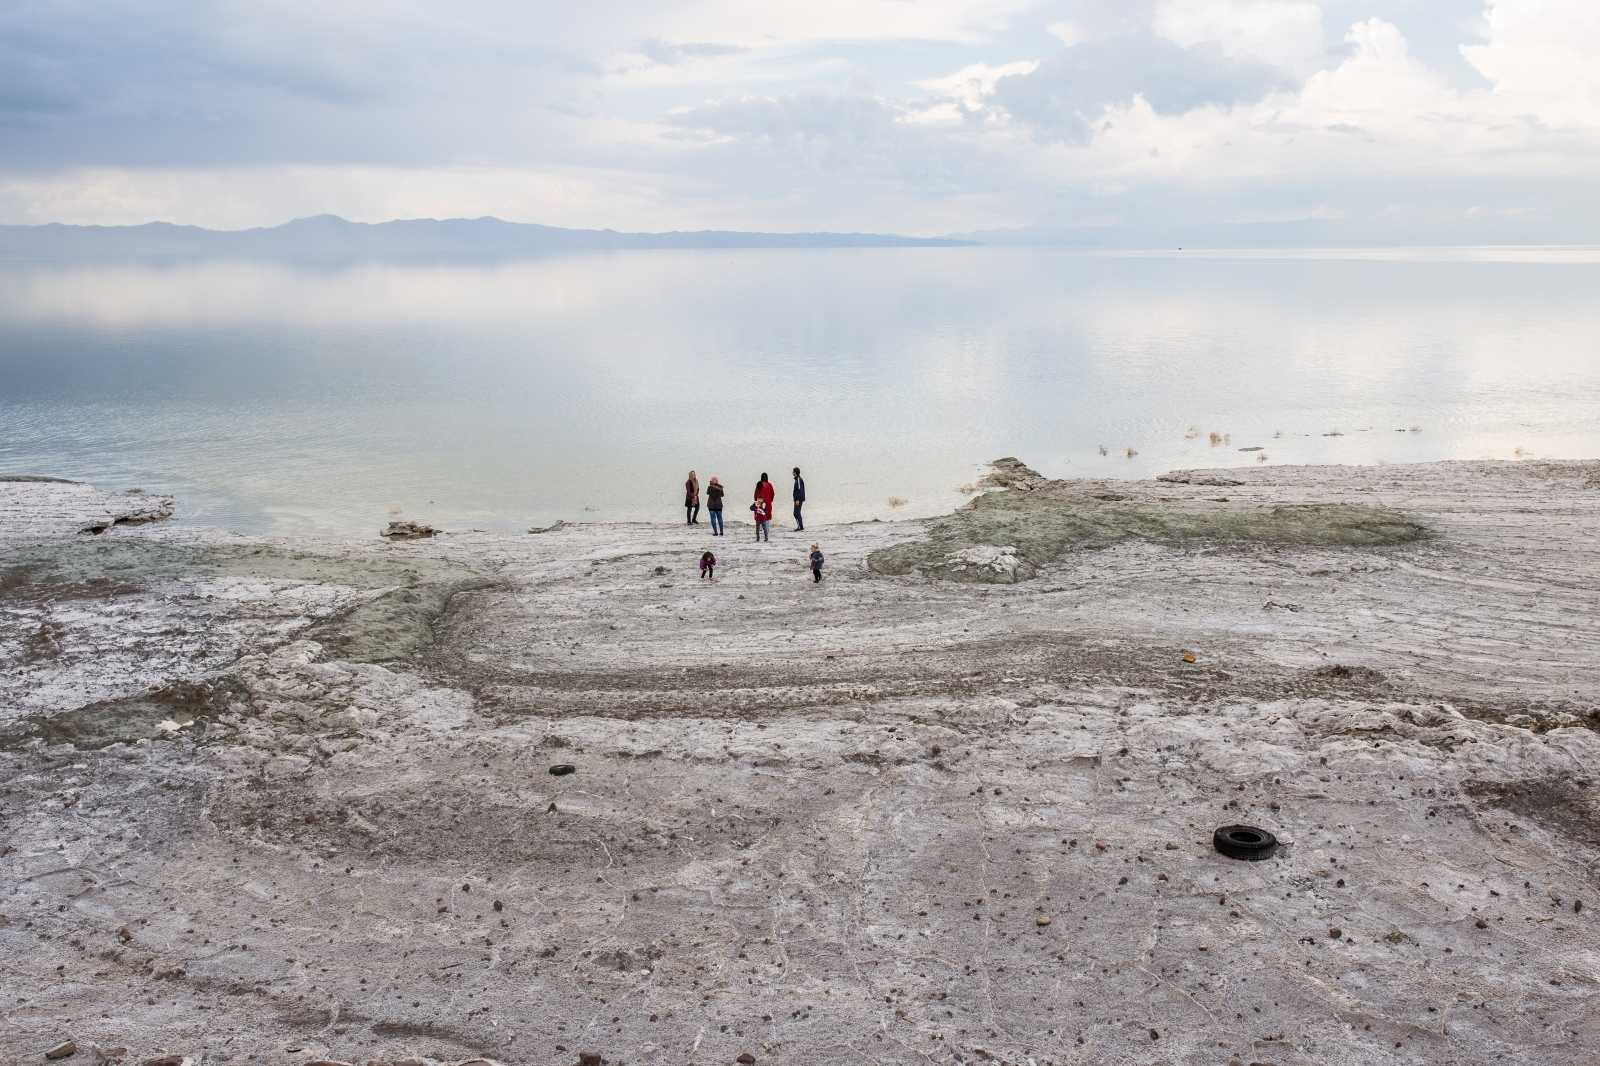 People came to visit lake Urmia and to take pictures from what remains of it. Lake Urmia is showing signs of recovery in some small parts because of heavy rainfalls this year. The tourism sector has lost out While the lake once attracted visitors from near and far. Lake Urmia|West-Azerbaijan|Iran| 2016